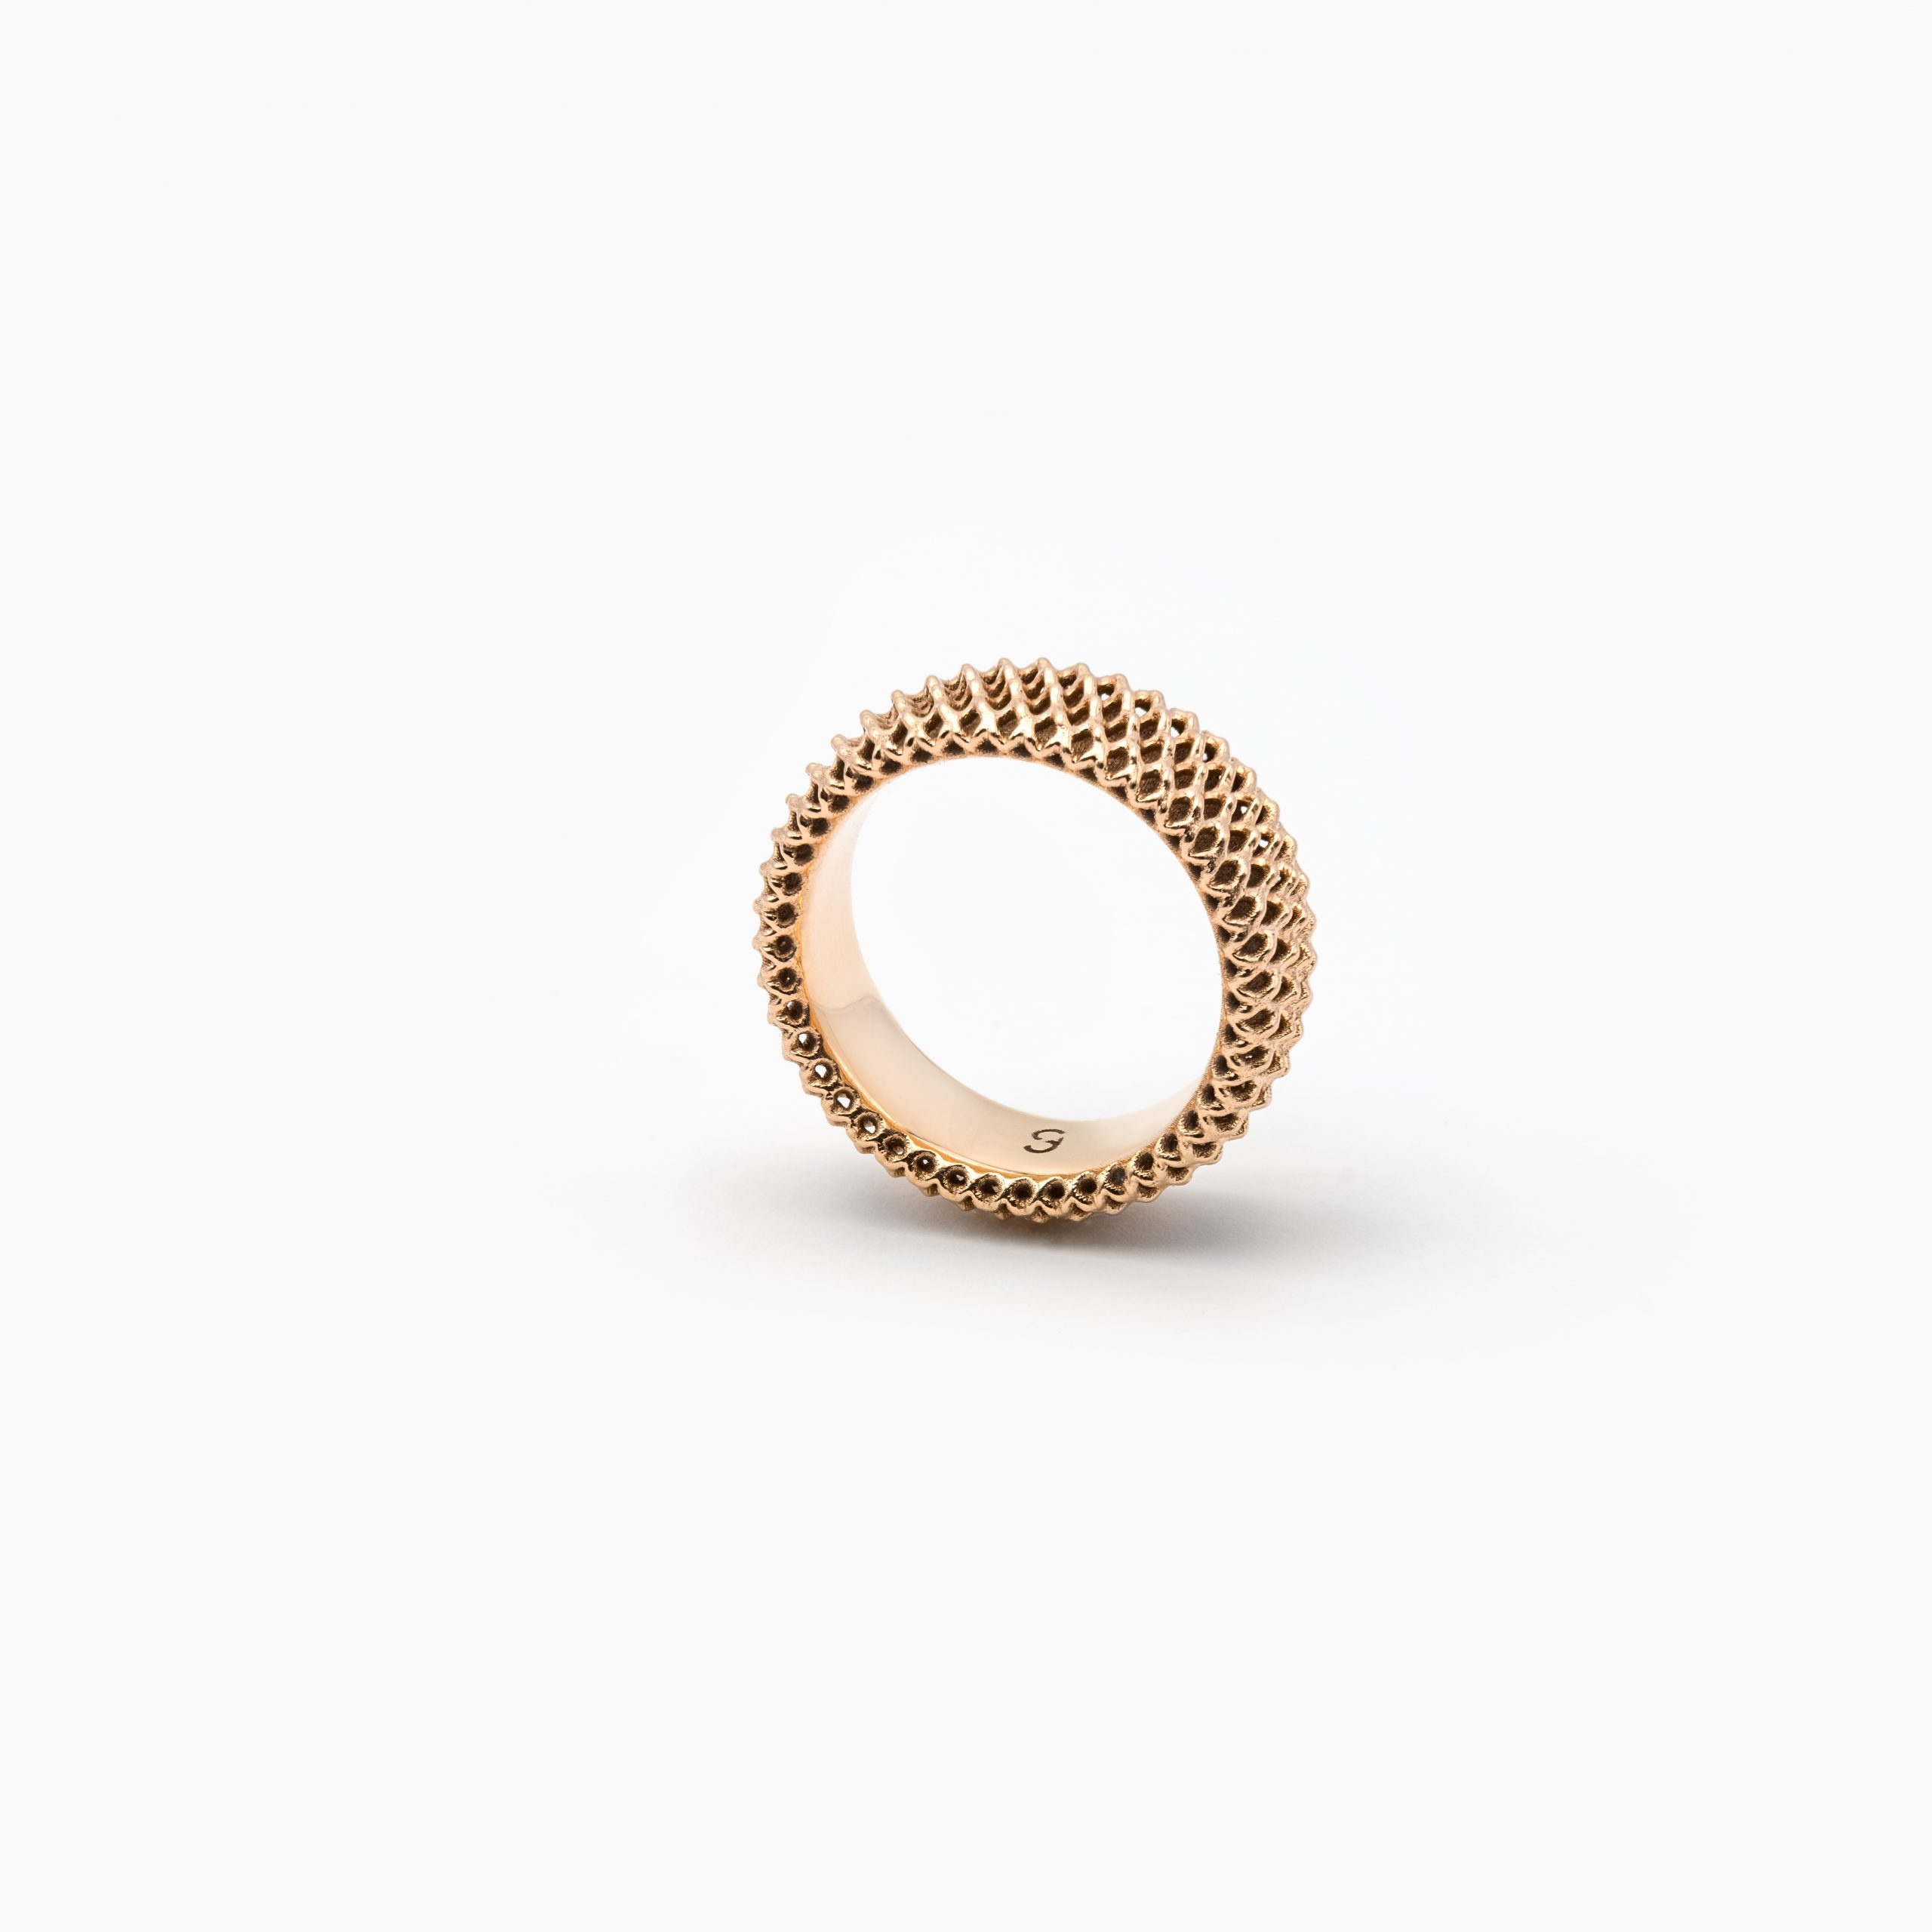 Ring-Iva-Roségold-SIAN-DESIGN-Trauring-Verlobungsring